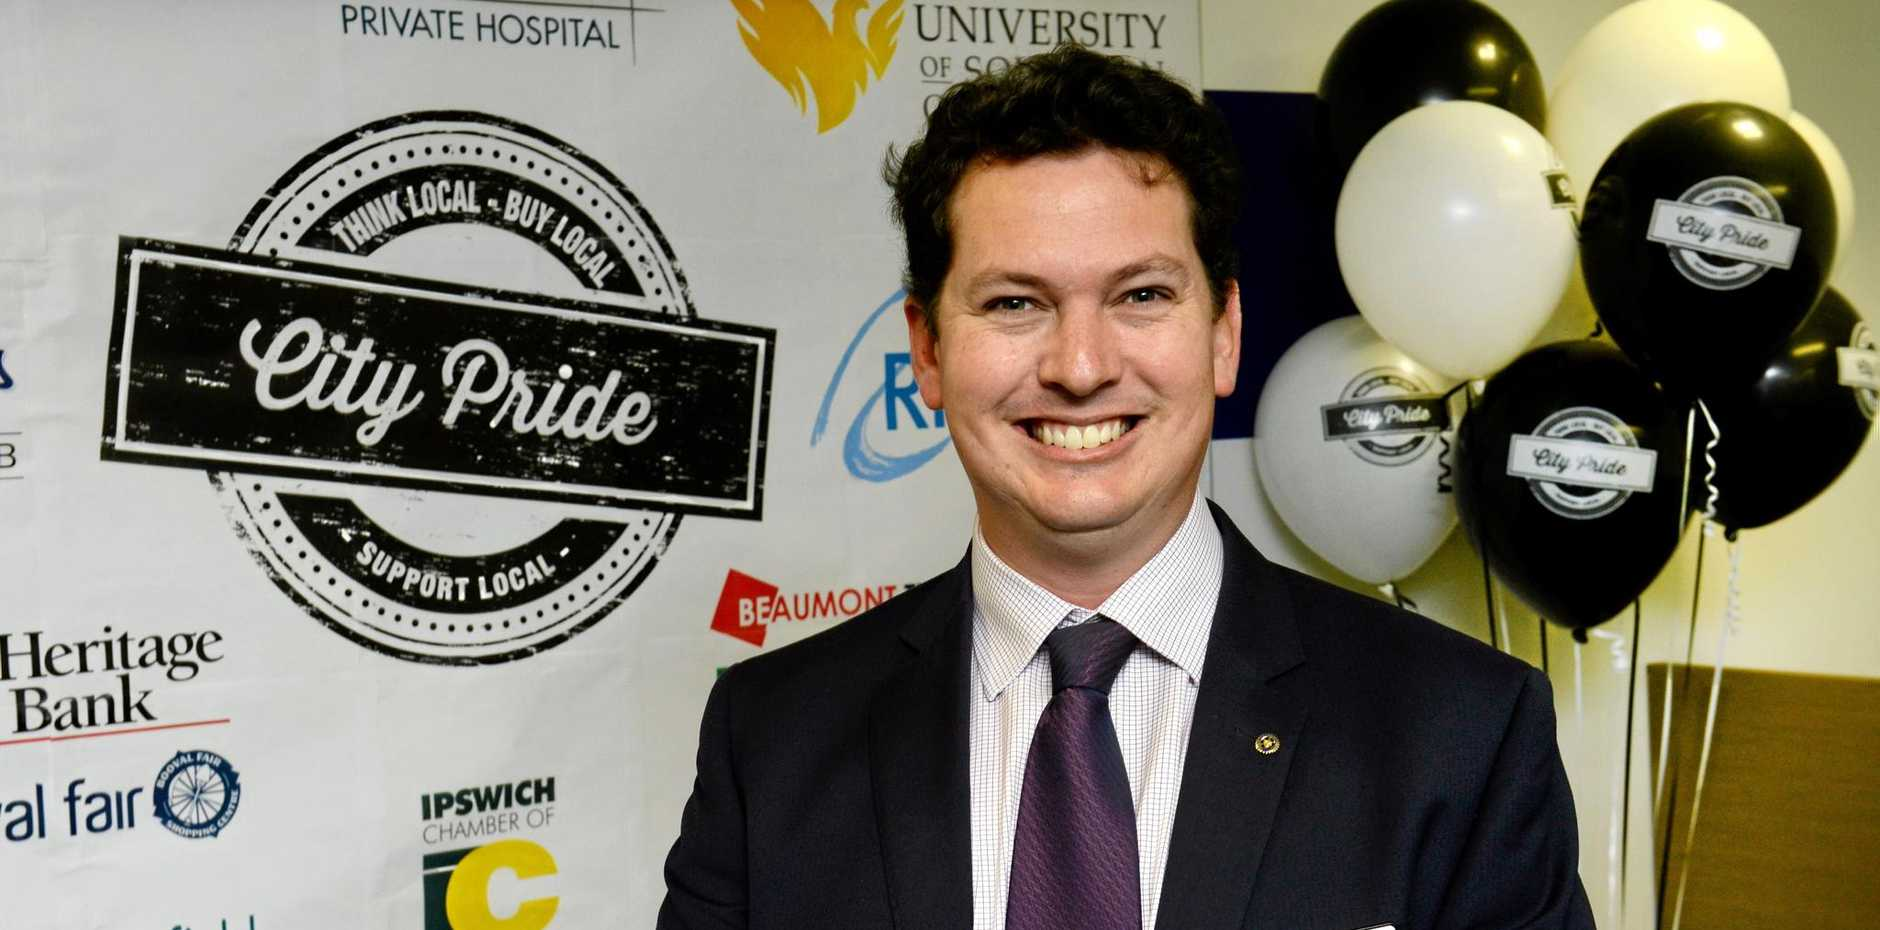 HOME GROWN: Cameron McKenzie of Australian Property Lawyers is a supporter of City Pride.